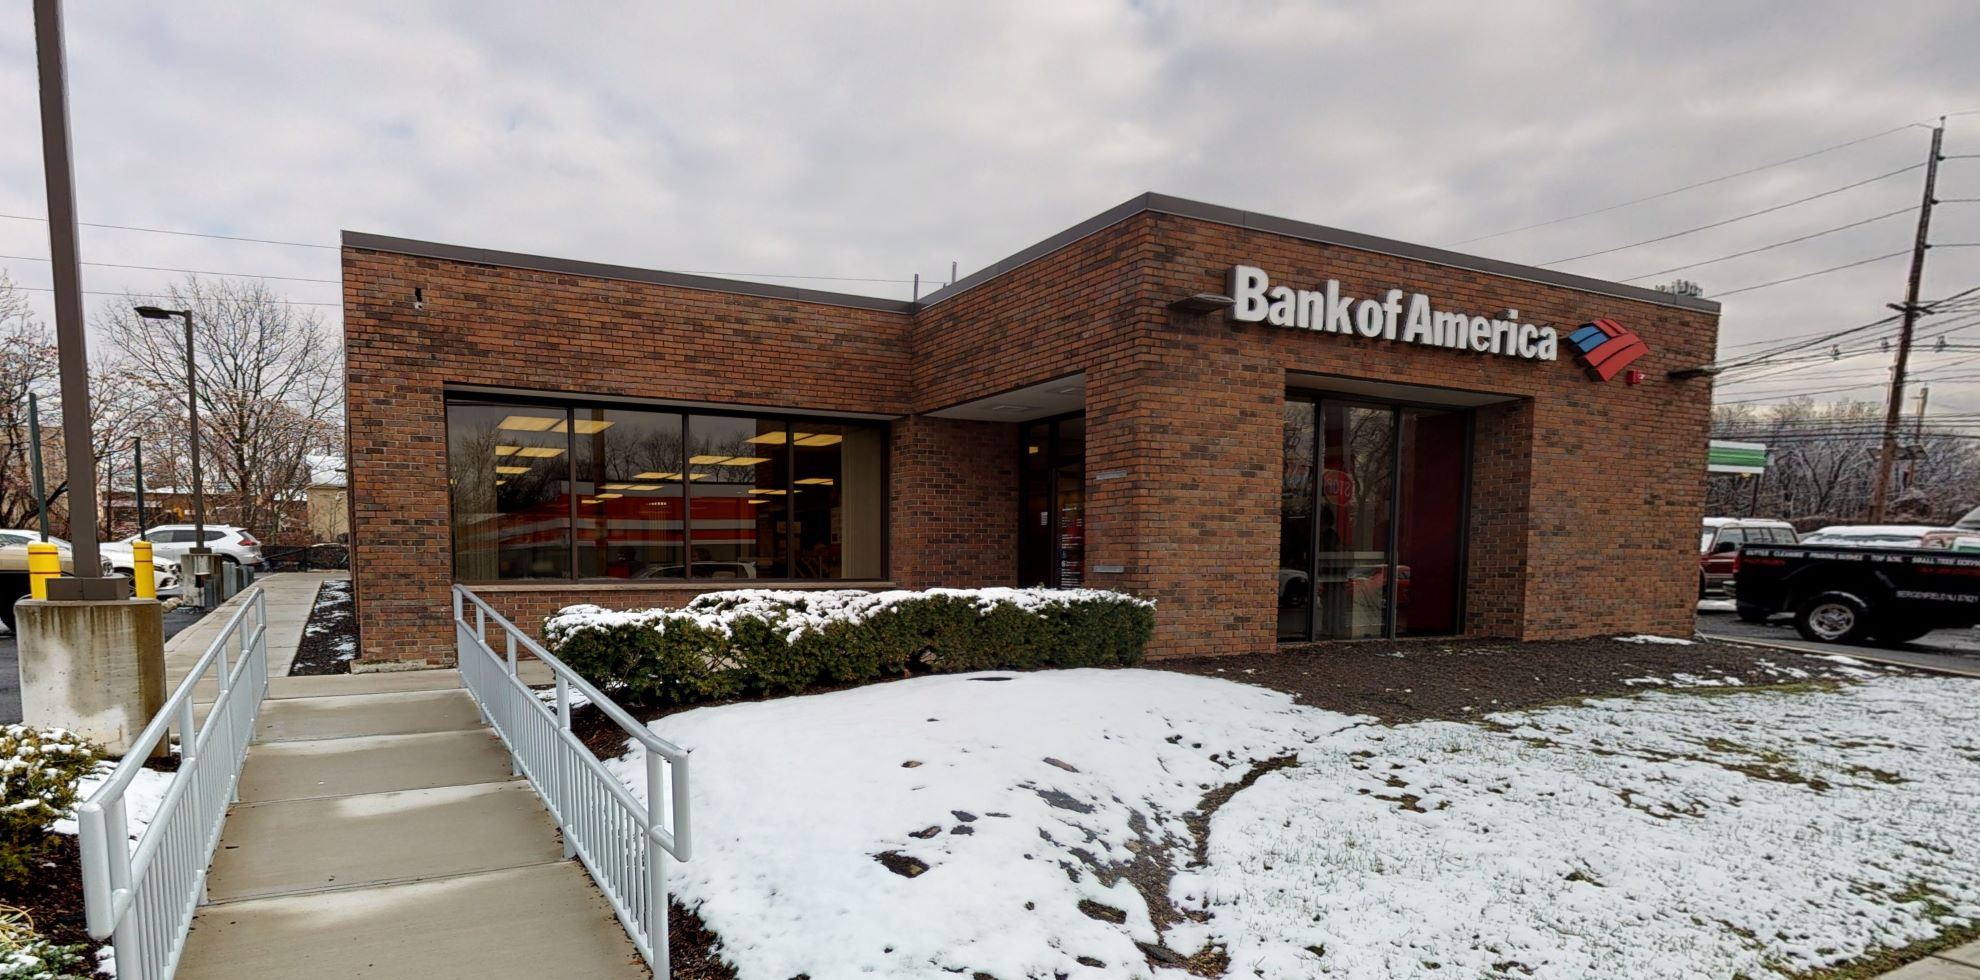 Bank of America financial center with drive-thru ATM | 235 Woodbine St, Bergenfield, NJ 07621